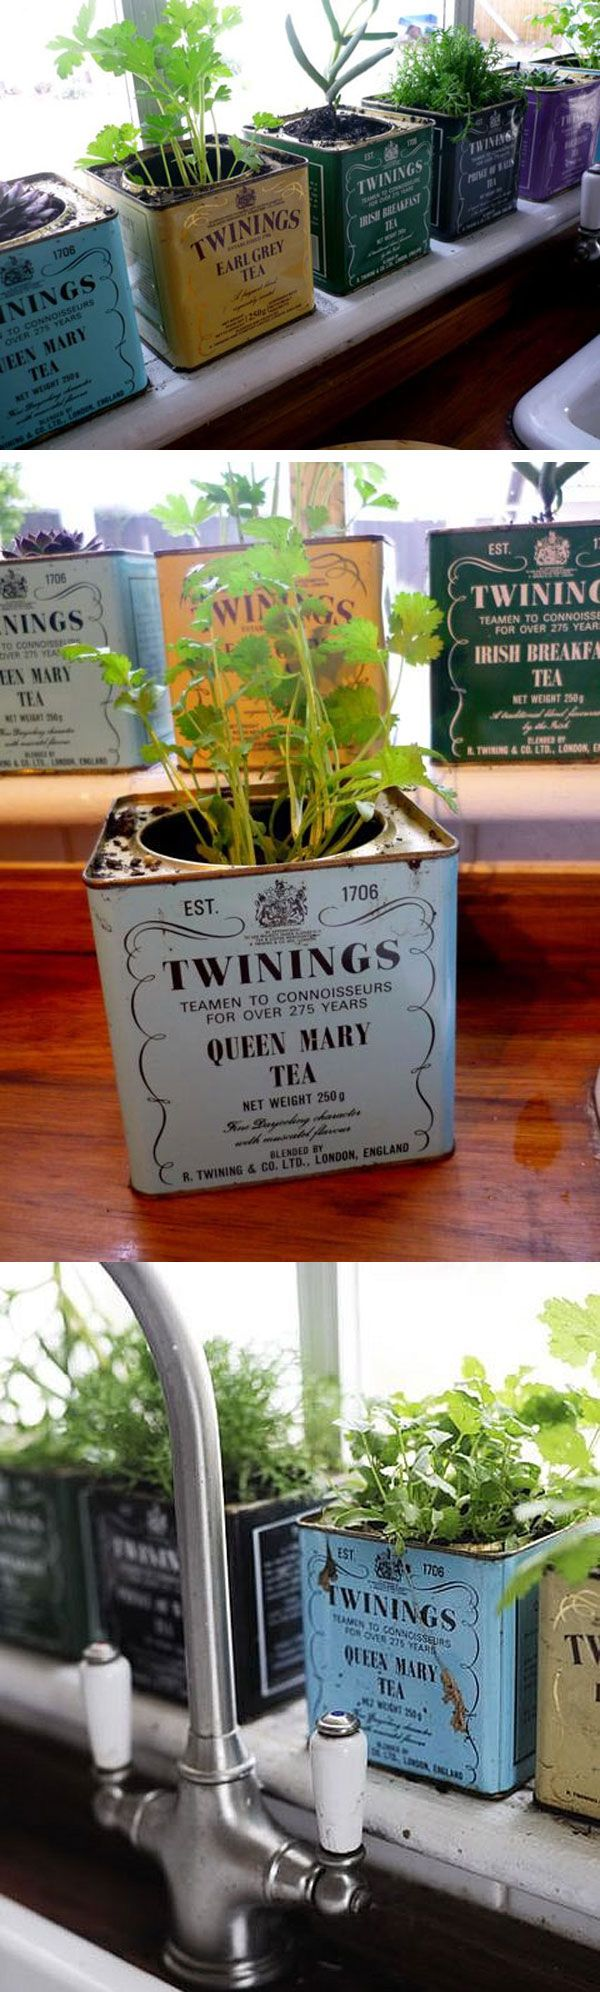 tea containers to plant herbs for the windowsill in the kitchen. - Love this idea! Now to find some tea tins.